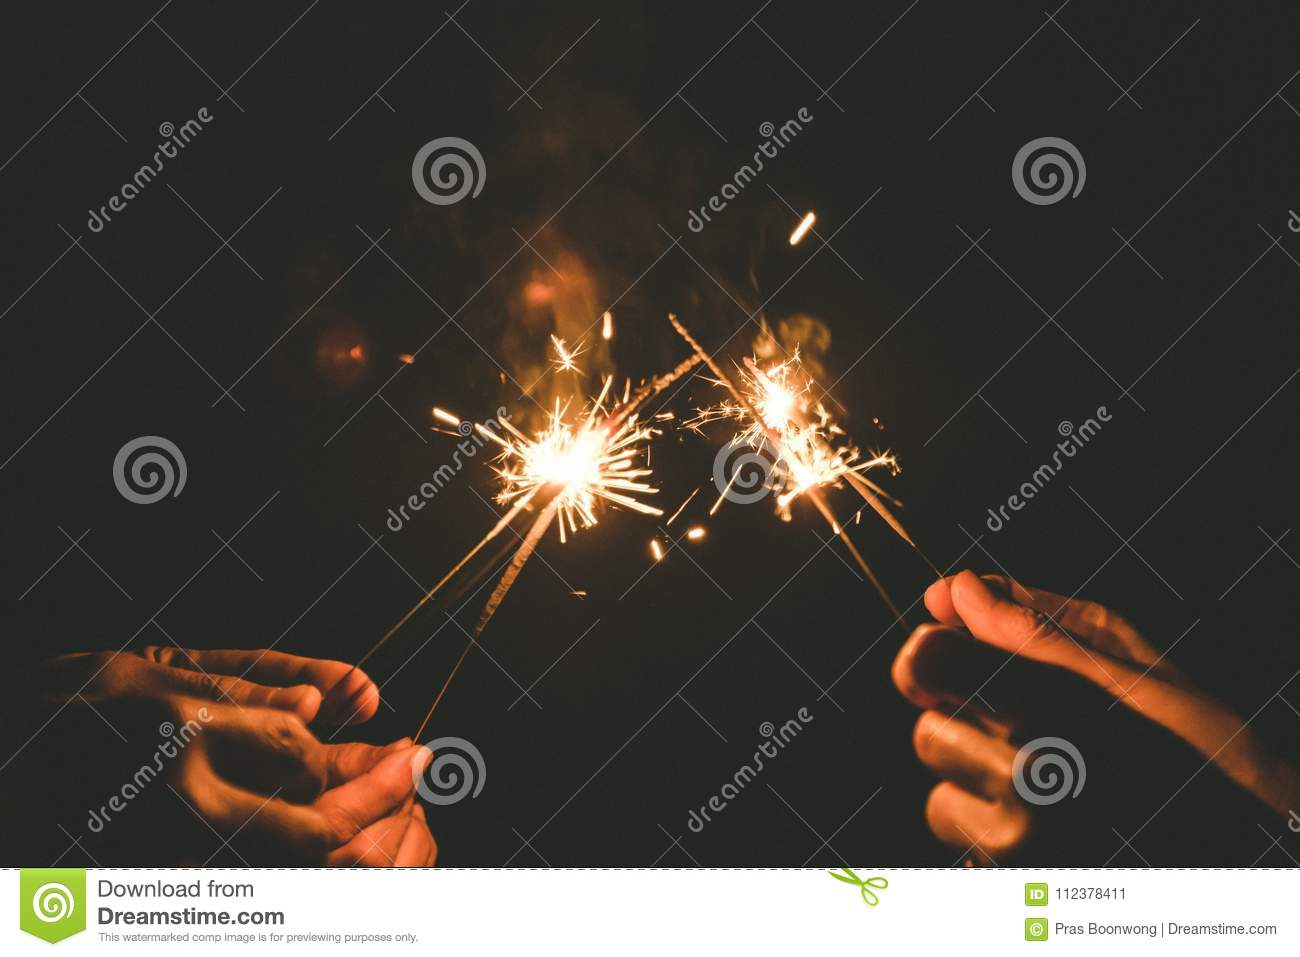 Hands holding sparklers for celebrate in the night time